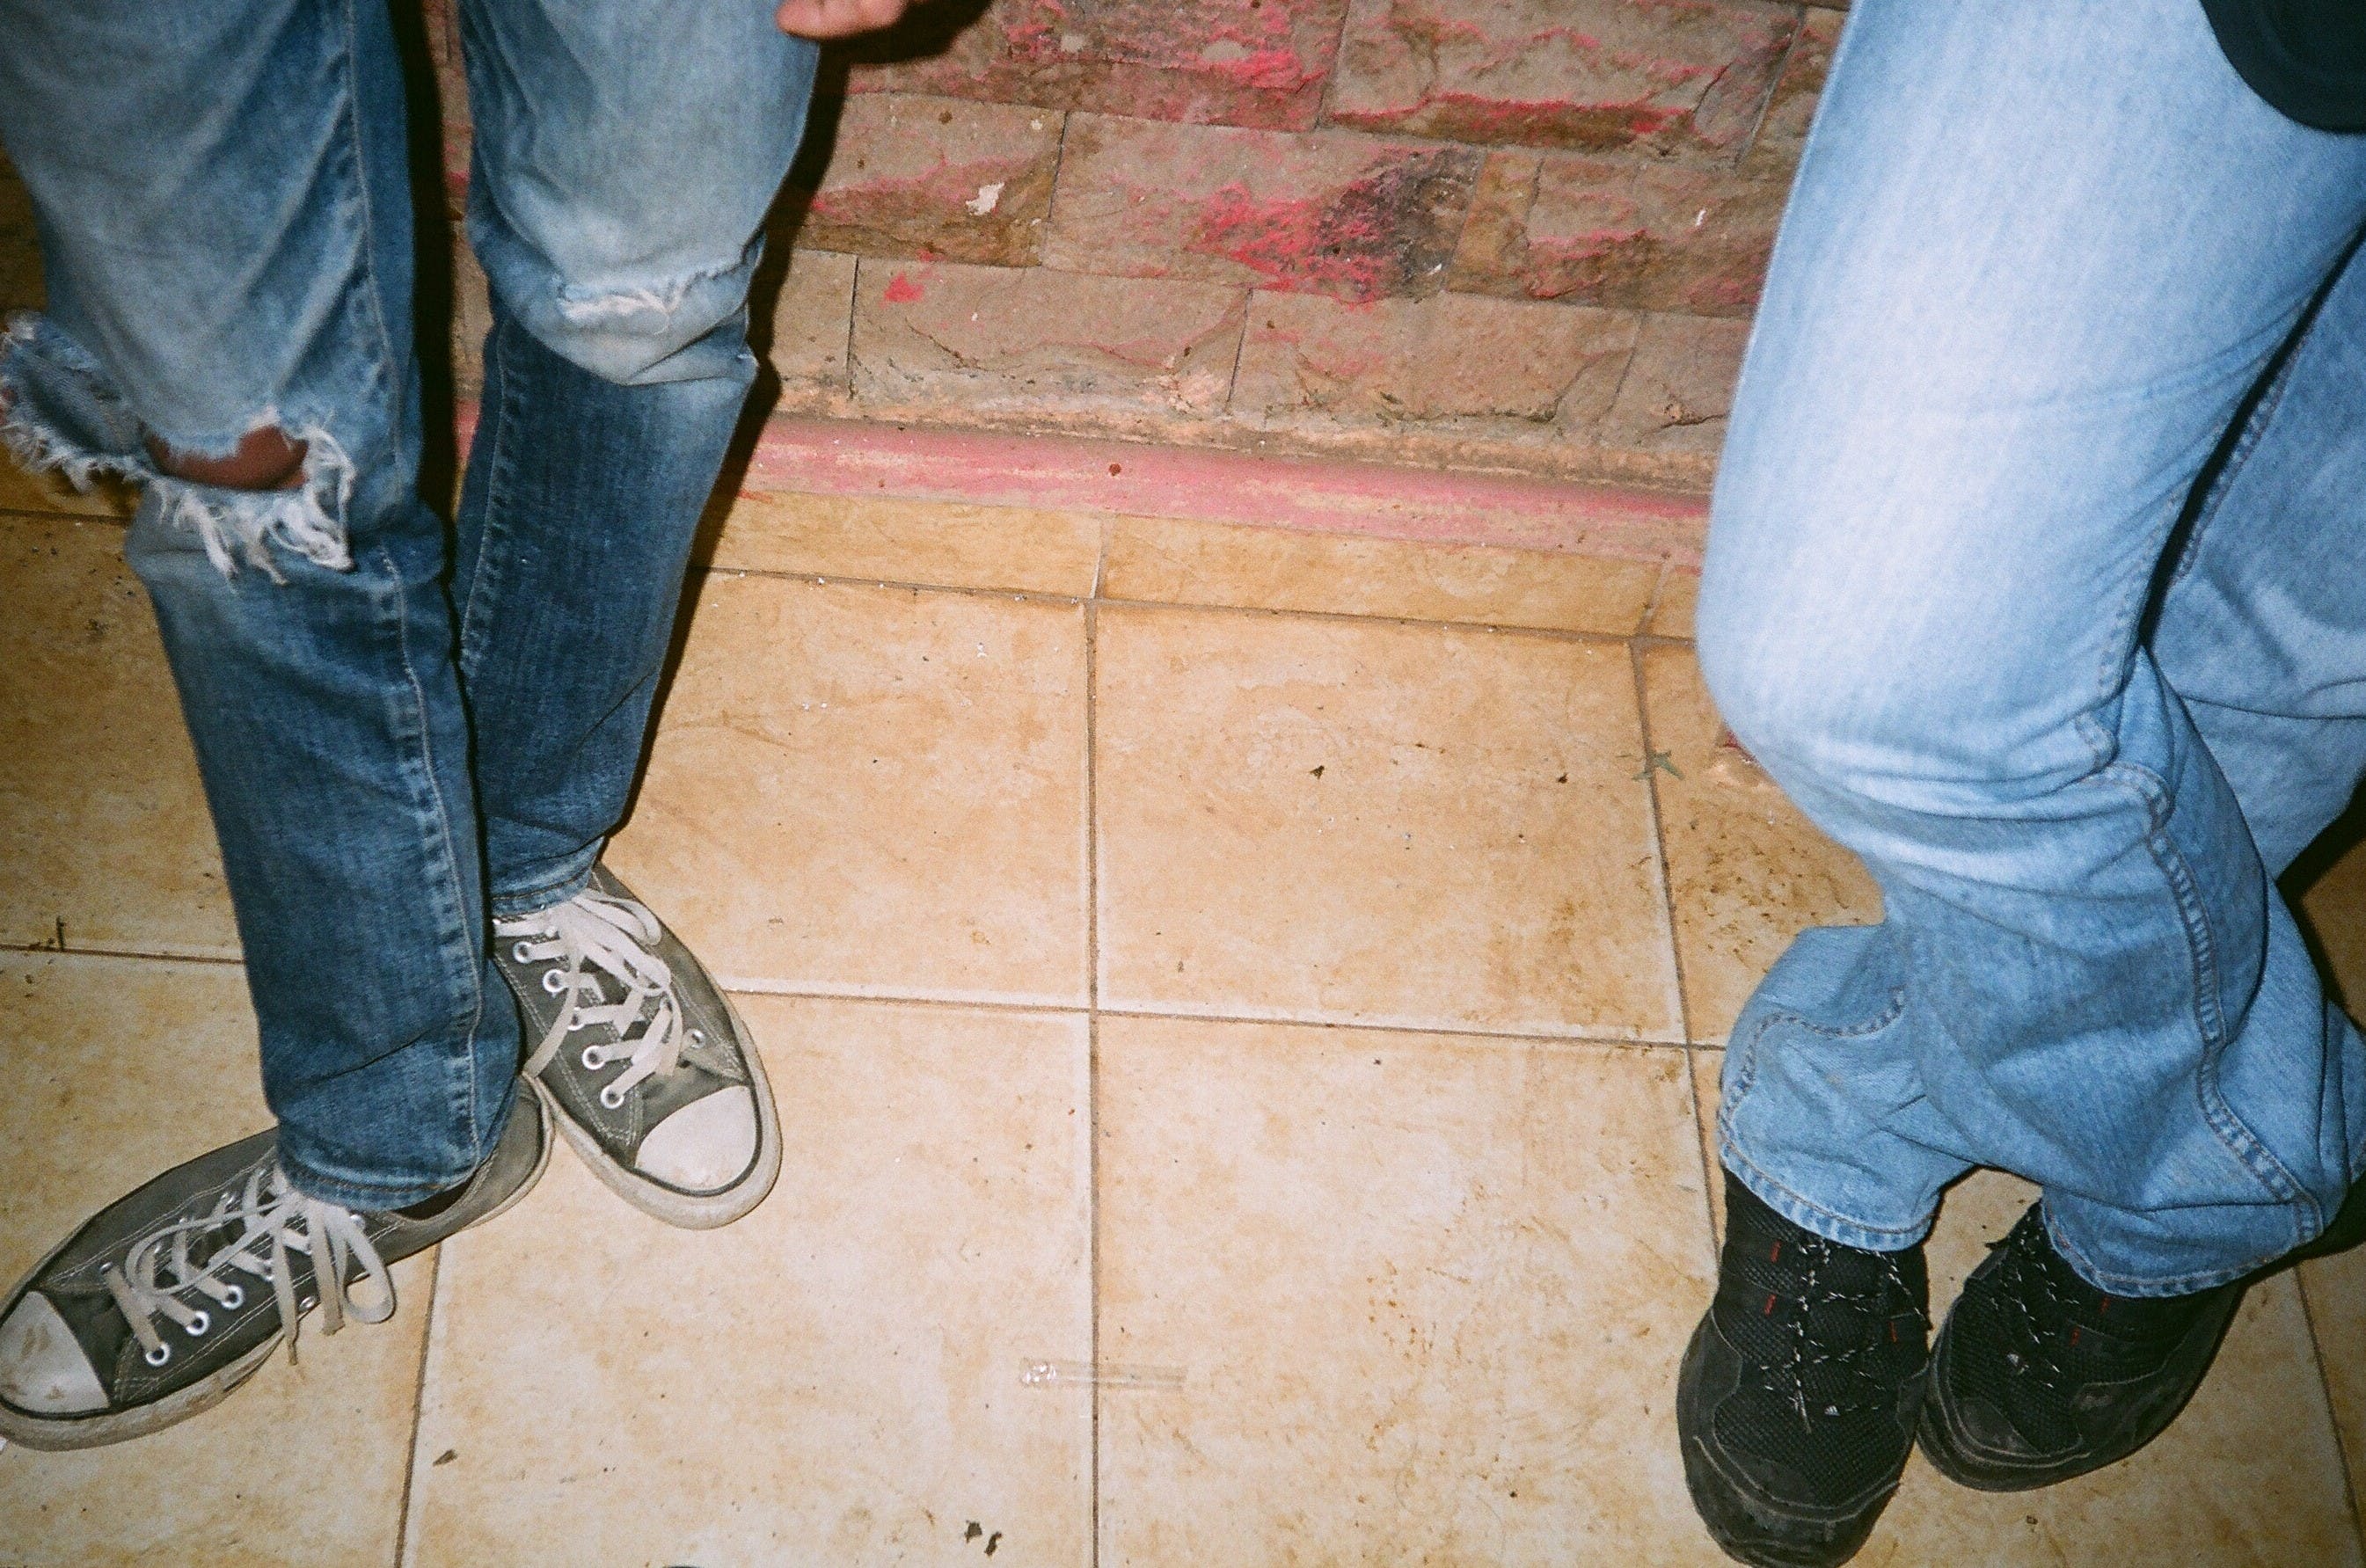 Two Person Wearing Blue Jeans and Lace-up Shoes